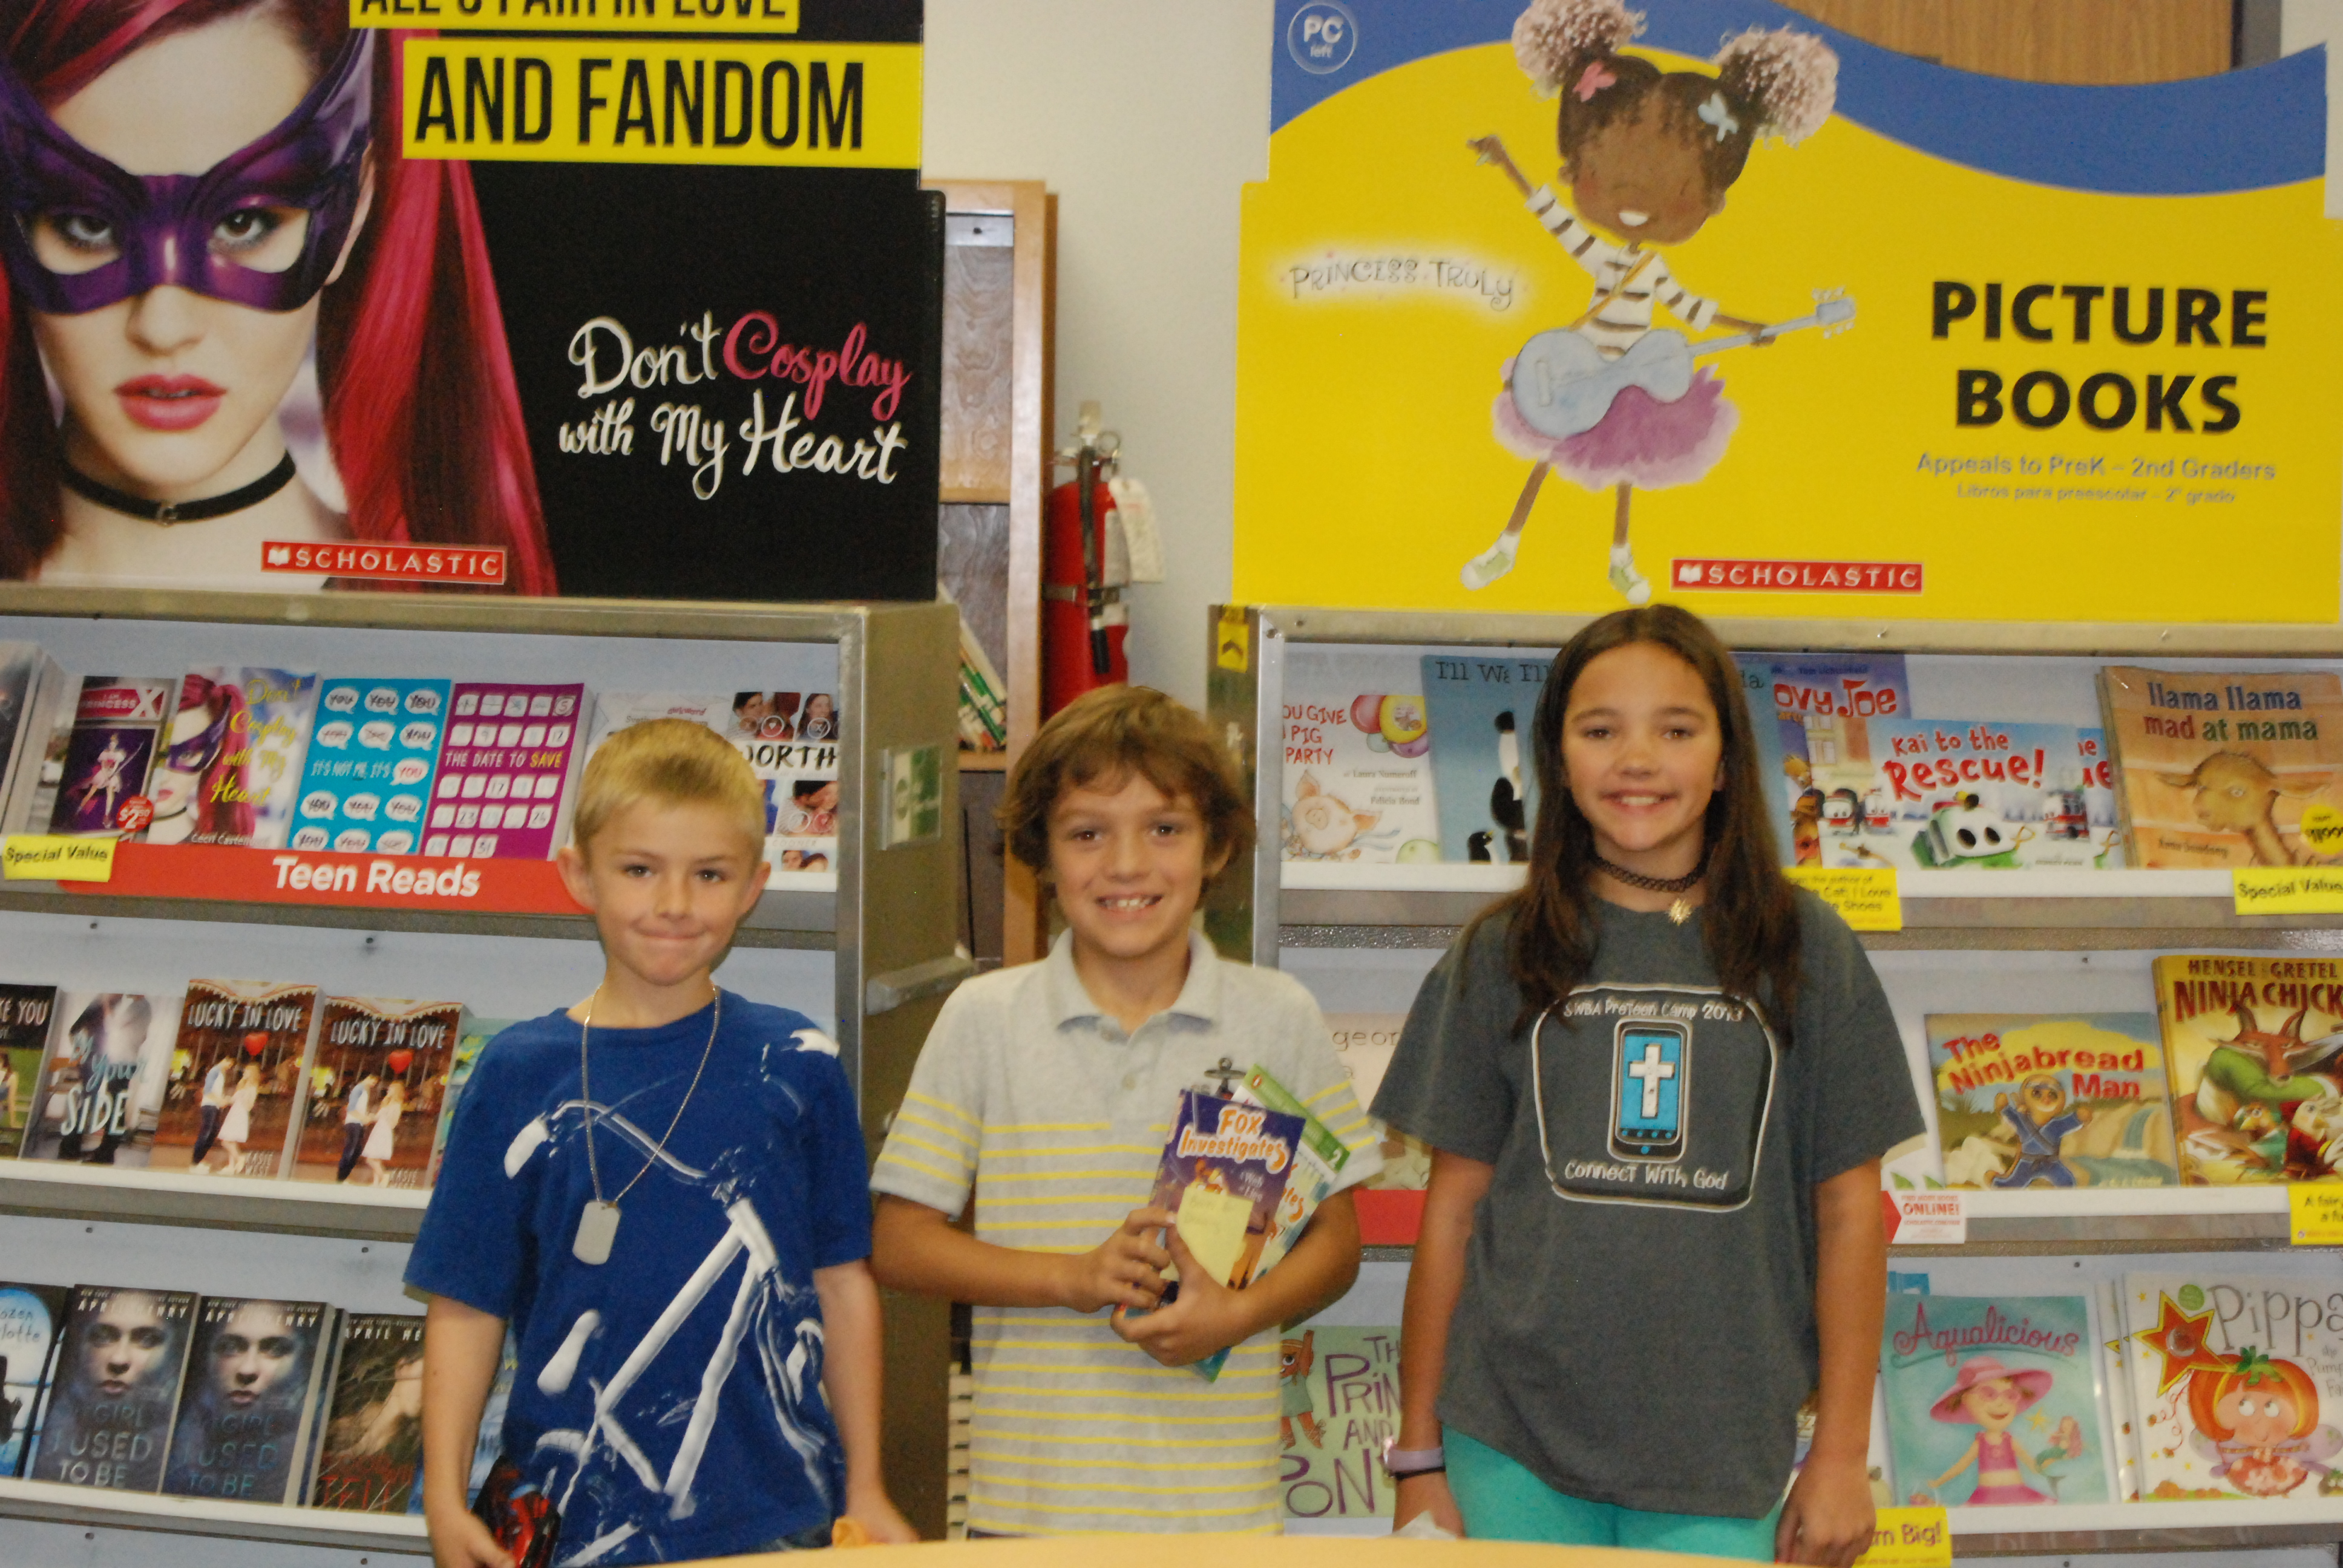 3 students with new books from Scholastic book fair